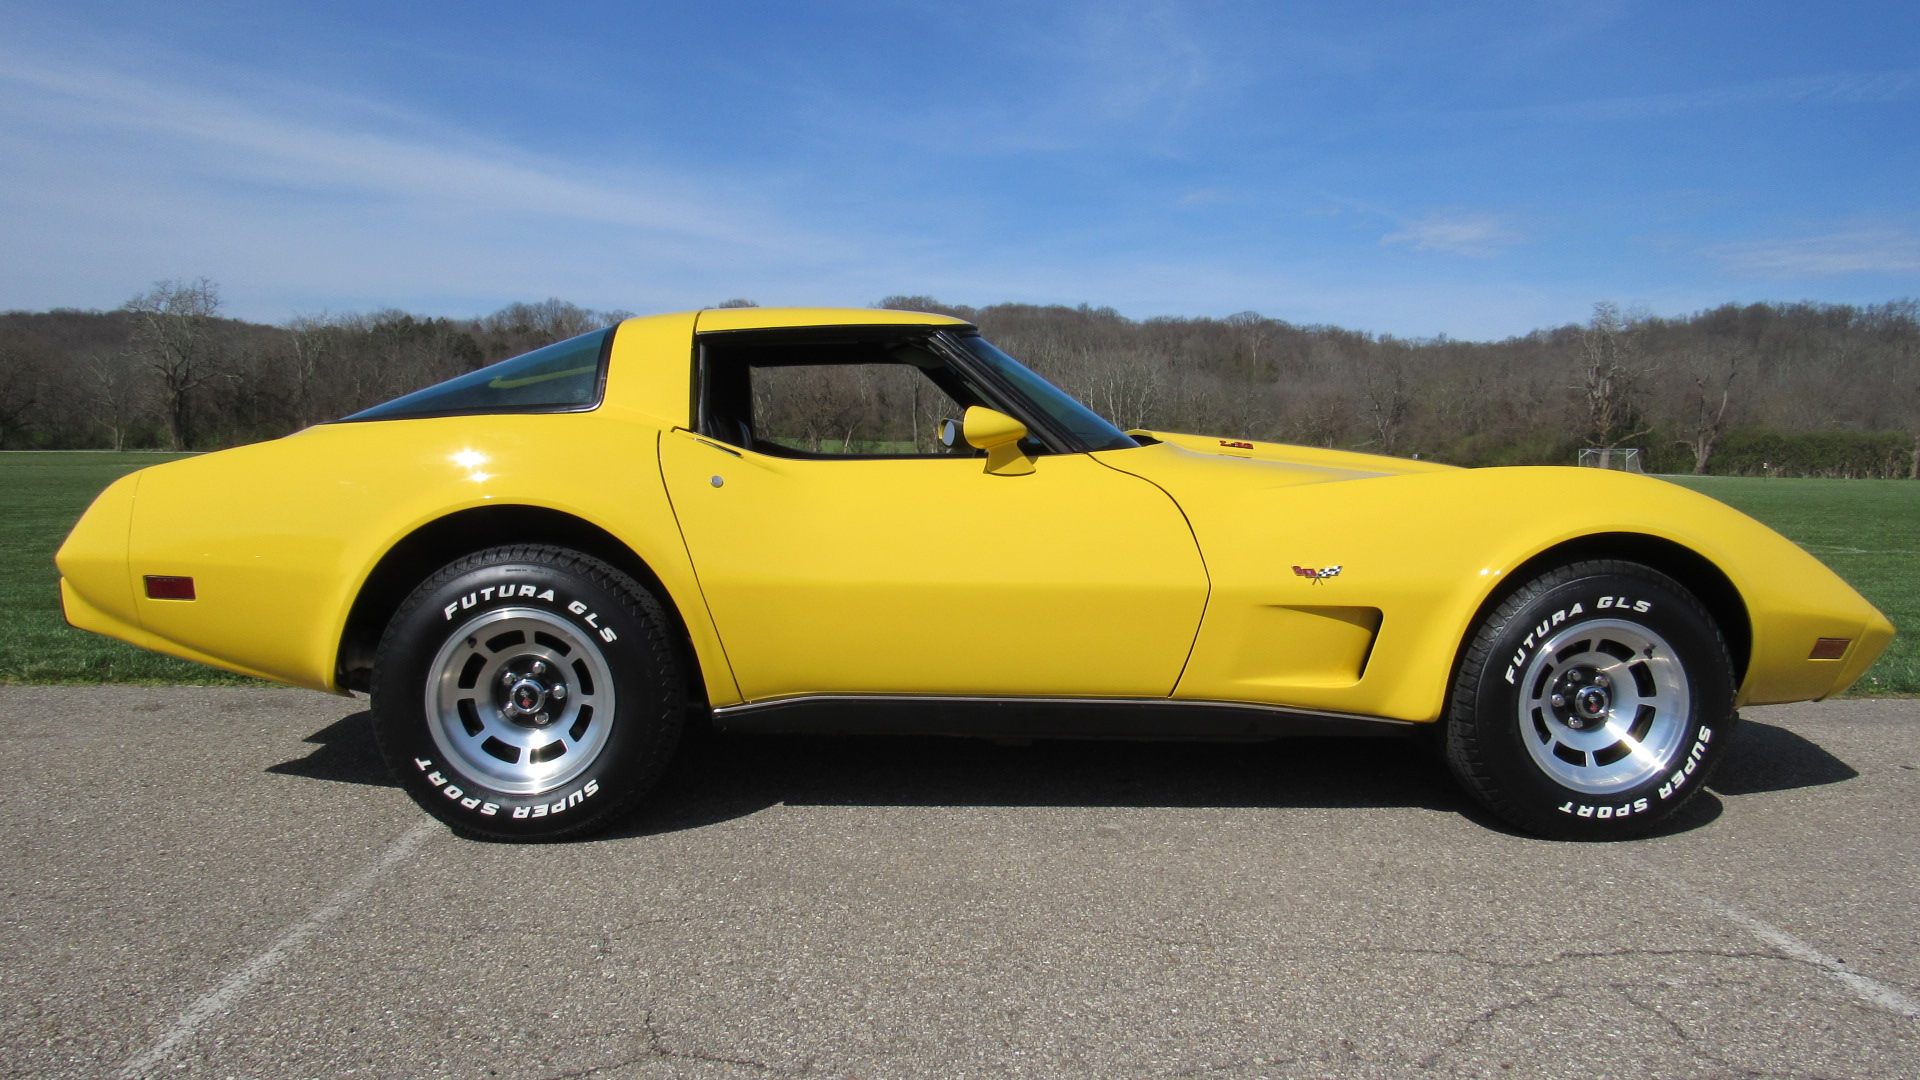 1979 Yellow 4 Speed Corvette Sold Cincy Classic Cars